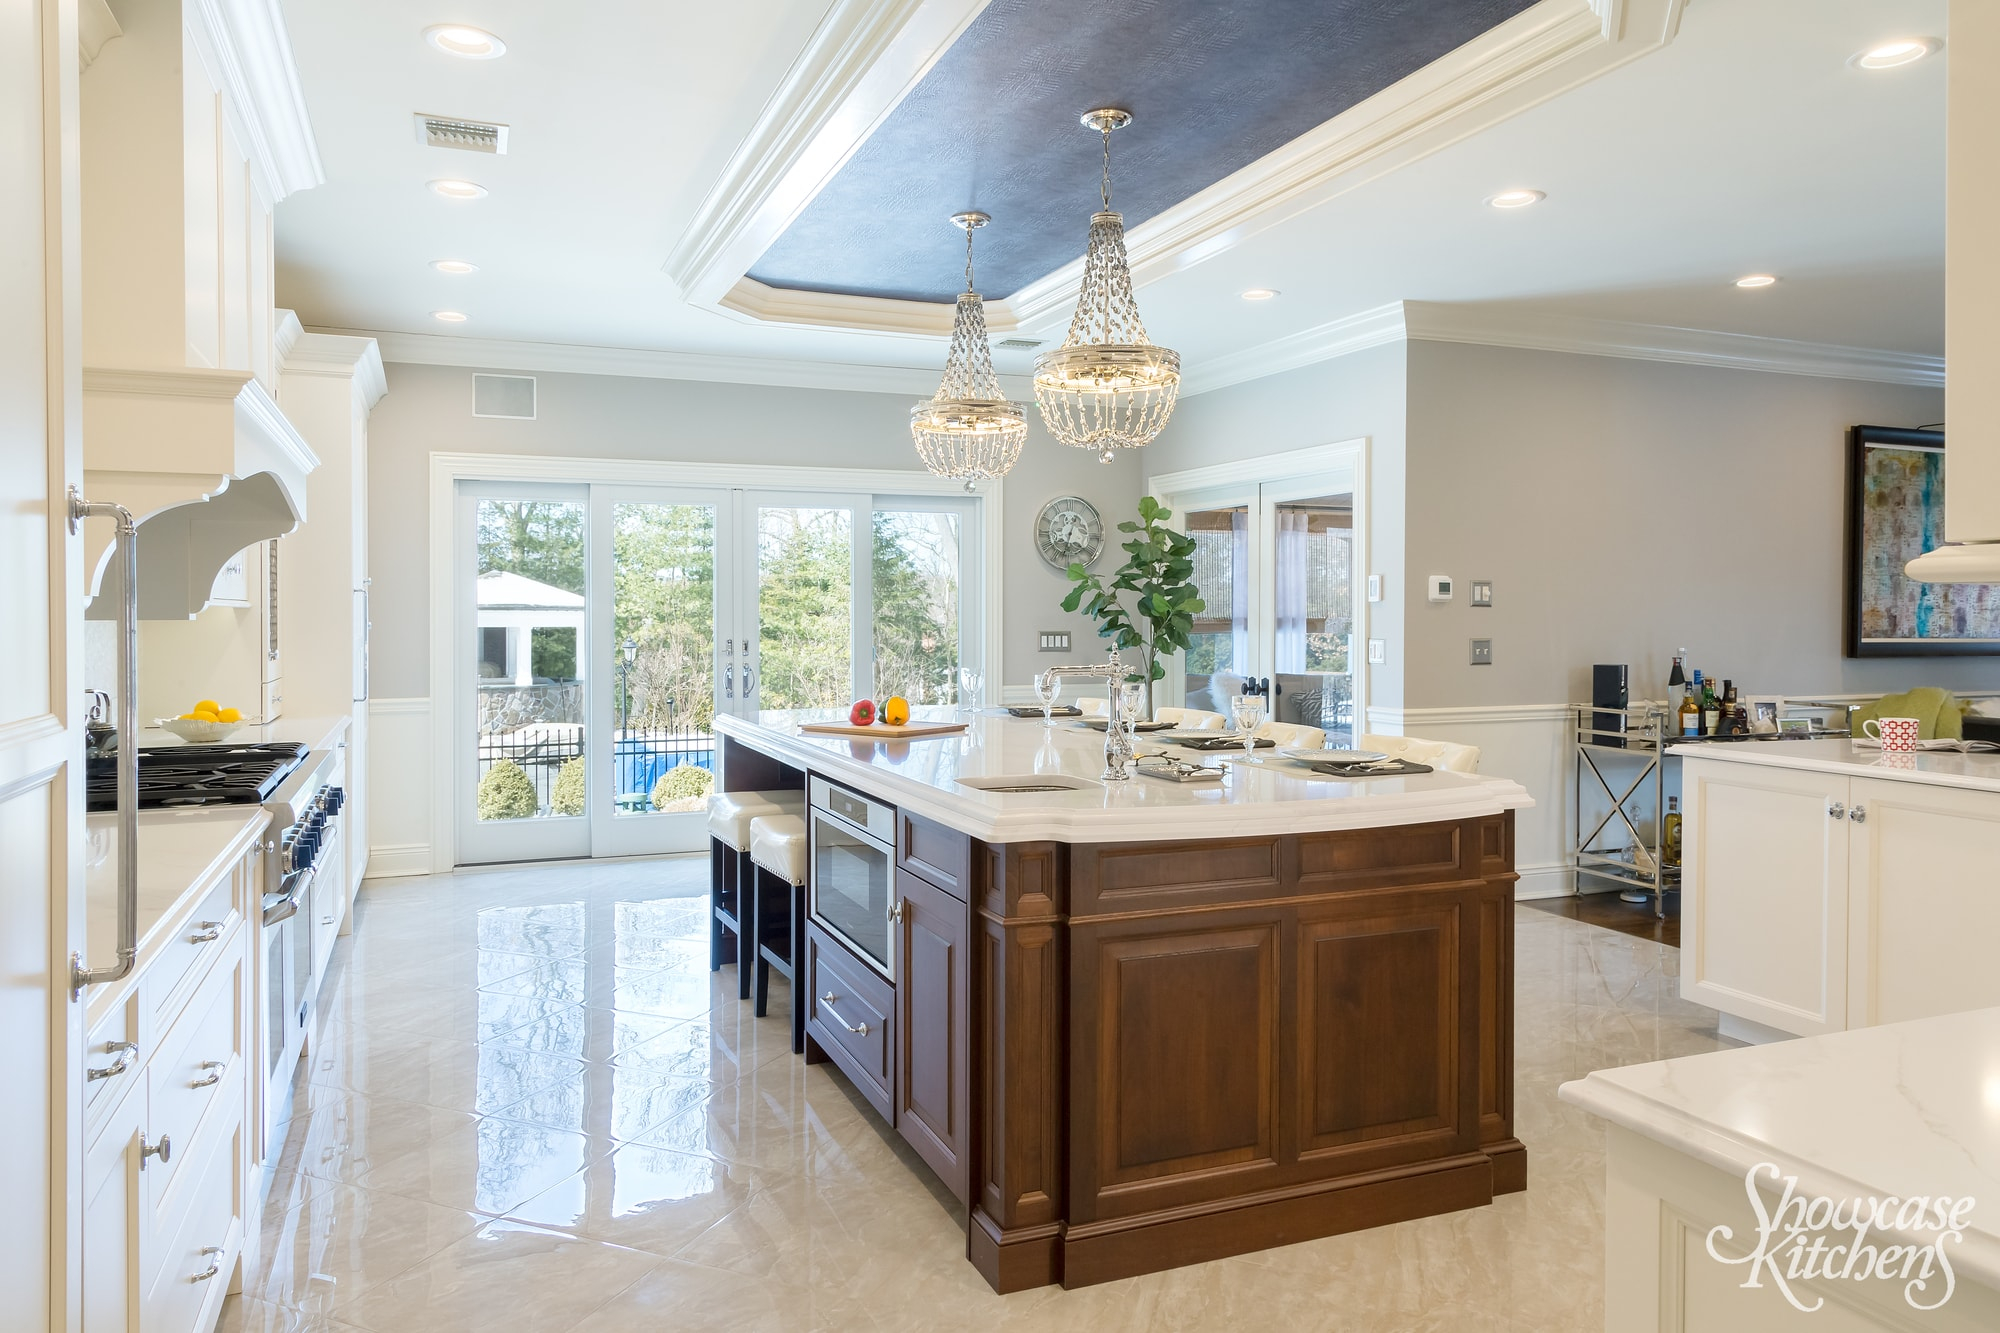 Transitional style kitchen with two grand pendant light fixtures